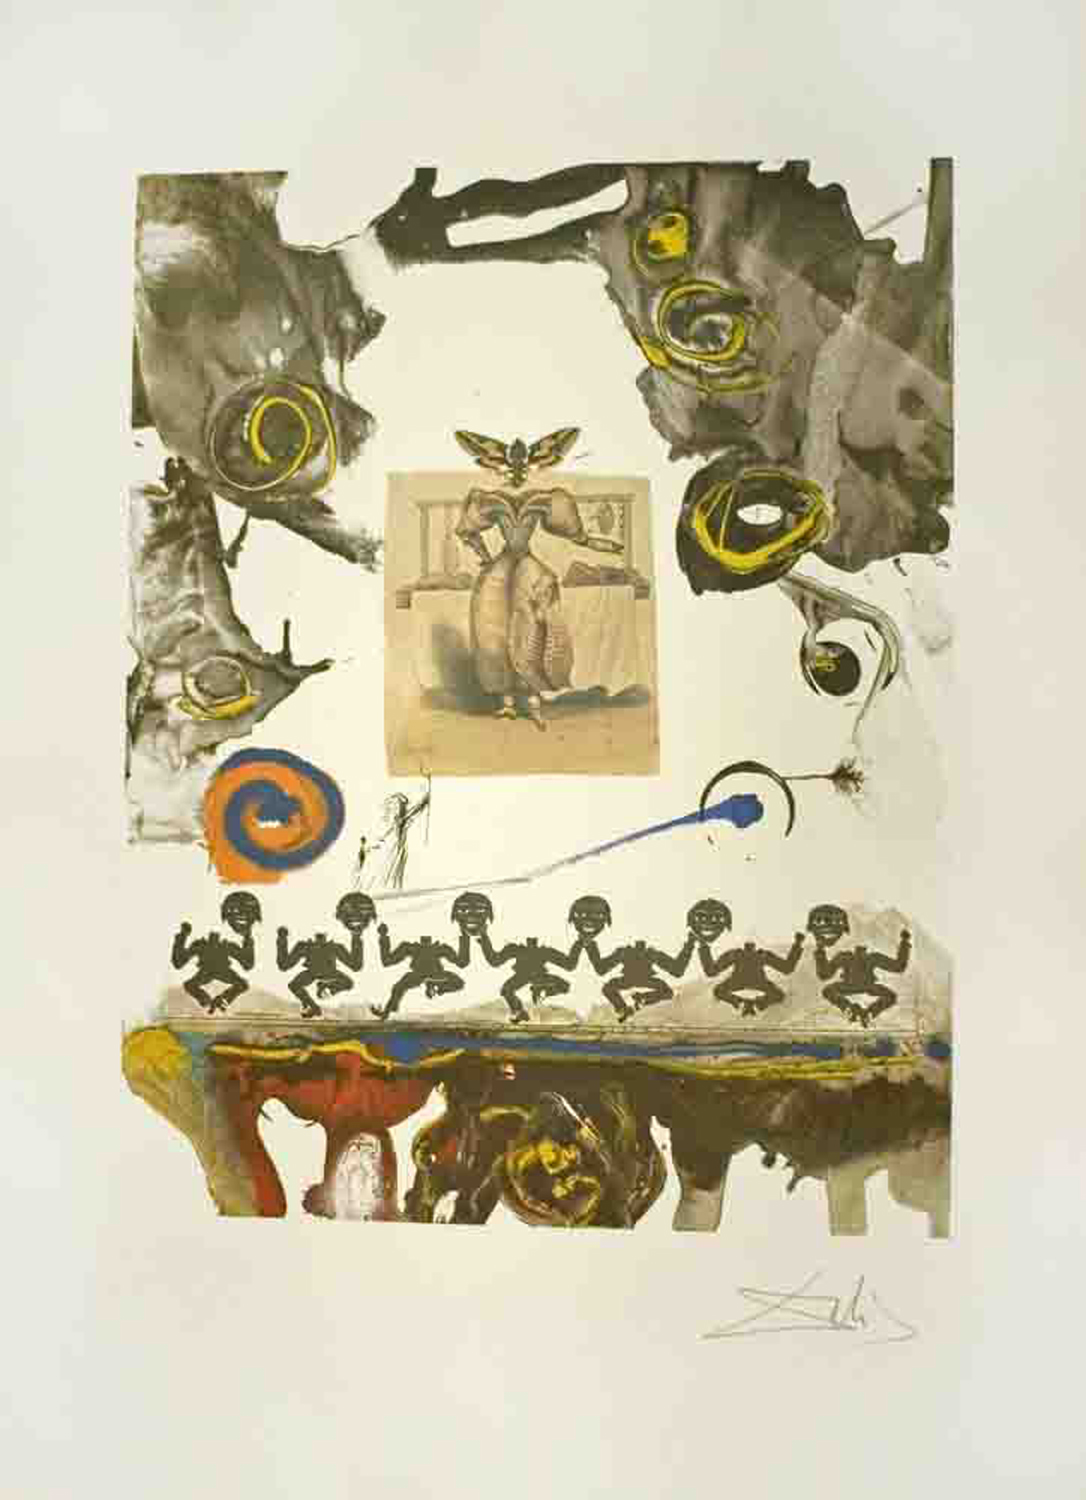 Memories of Surrealism: Surrealistic Gastronomy, color lithograph with drypoint etching, 20.75 x 16.25, signed ed of XL, 1971, ML 505